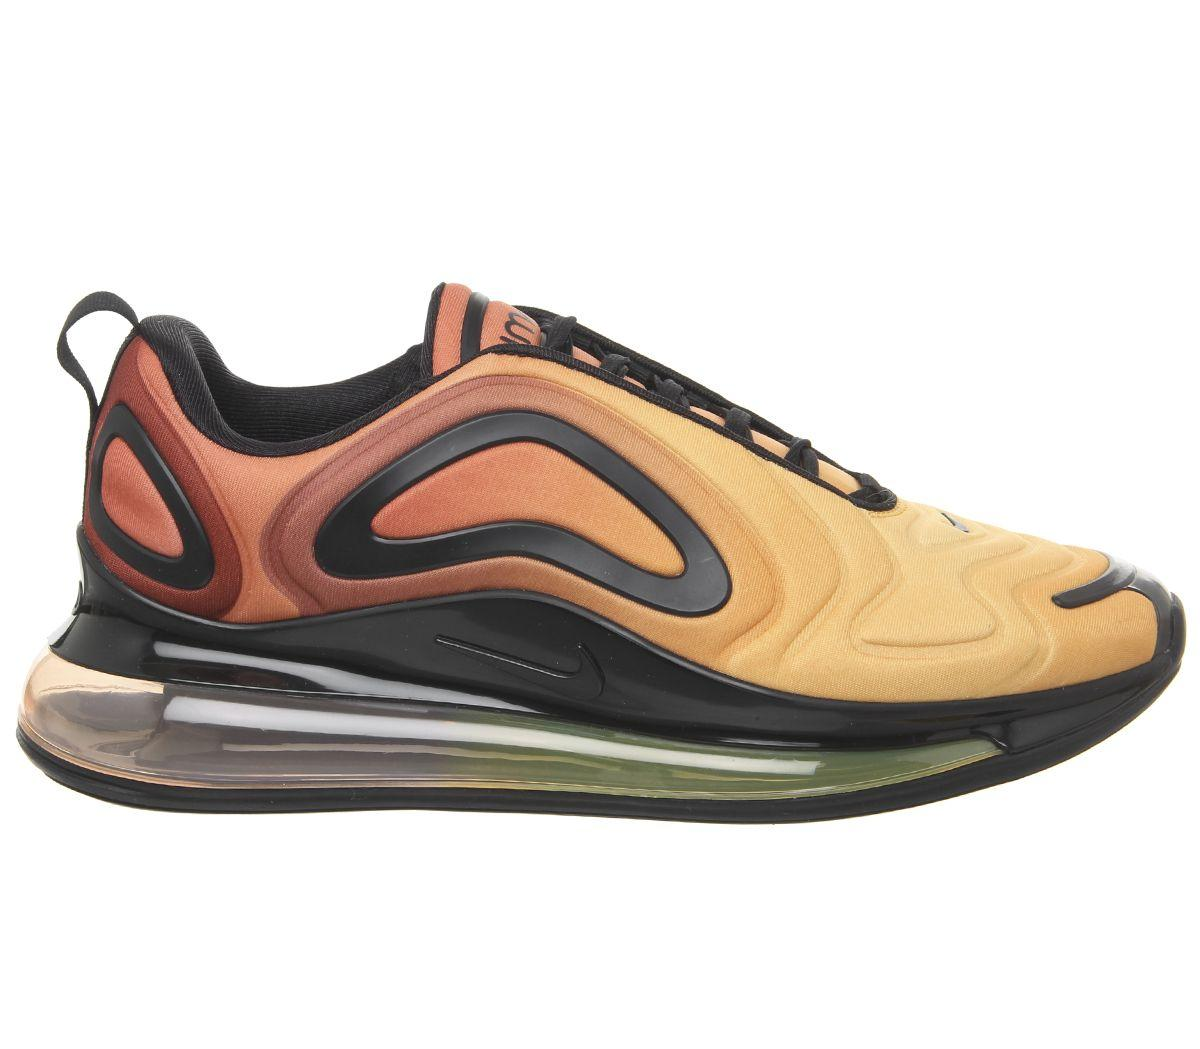 7887452c8e Nike Air Max 720 - Size 4 in Orange for Men - Save 42% - Lyst